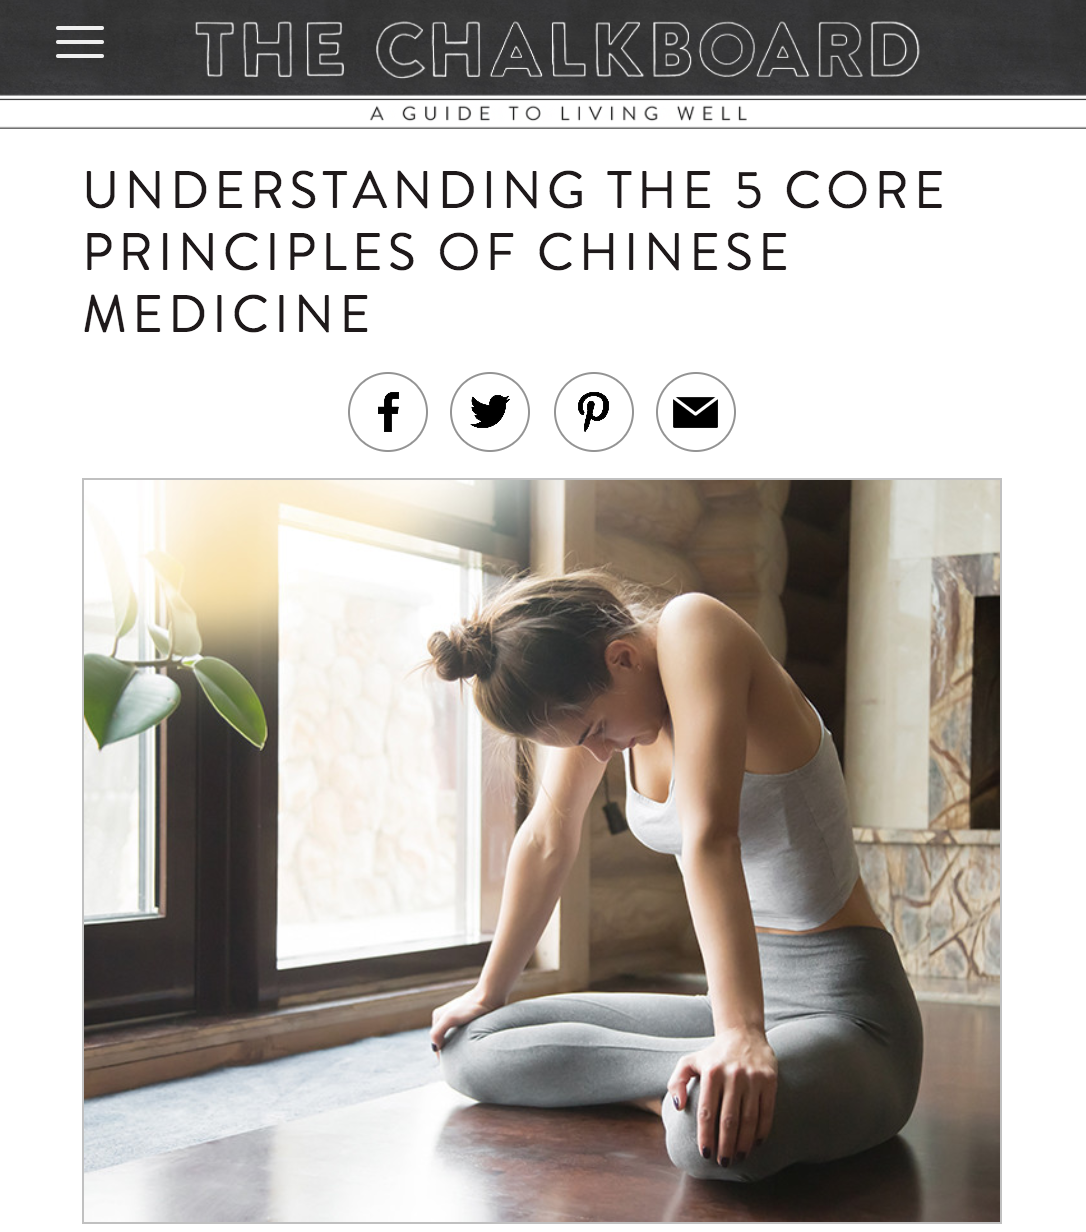 UNDERSTANDING THE 5 CORE PRINCIPLES OF CHINESE MEDICINE